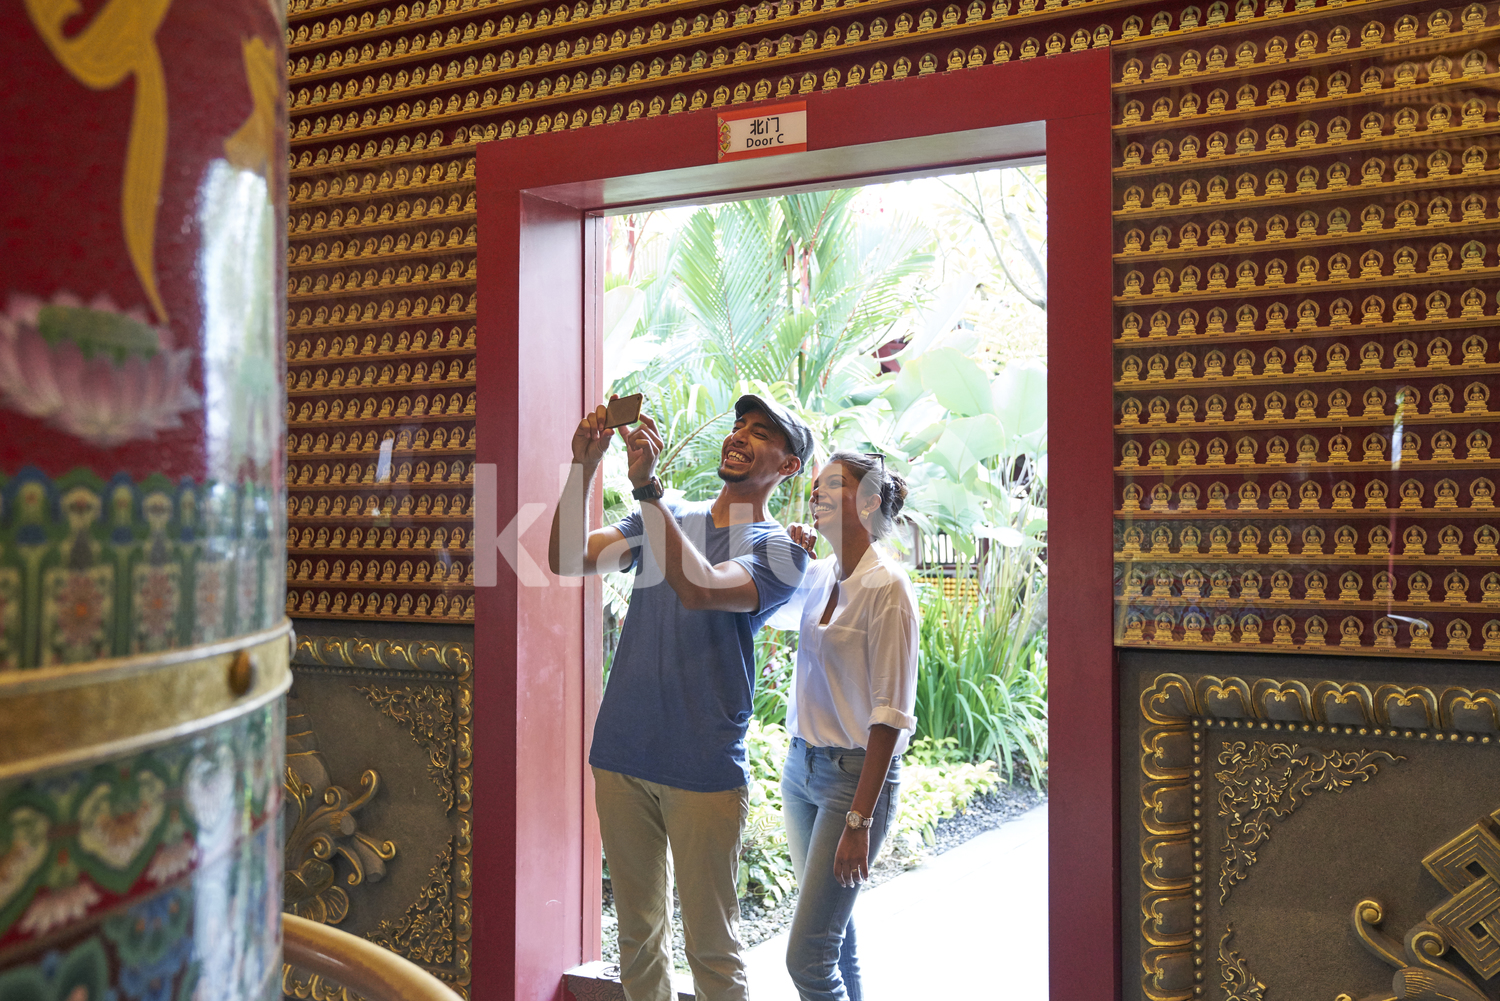 Curious tourists taking photos of a meditation bell in the Buddha Tooth Relic Temple